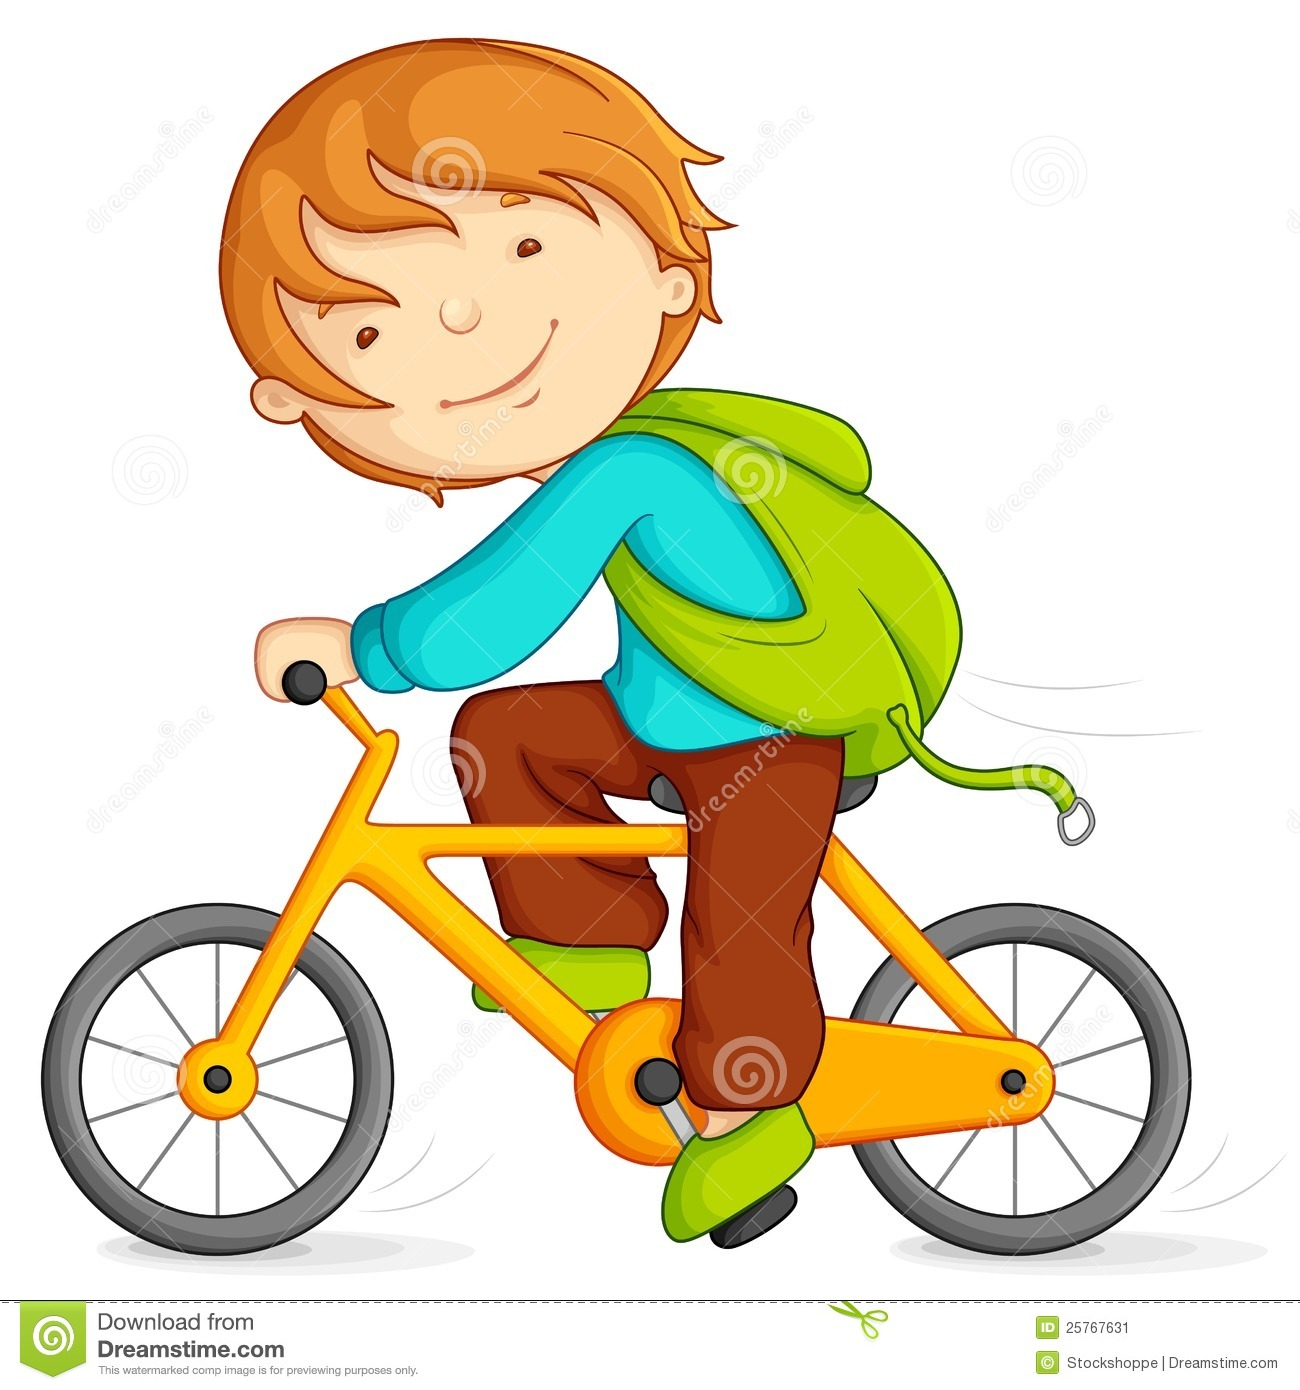 Child Riding A Bike Clipart.